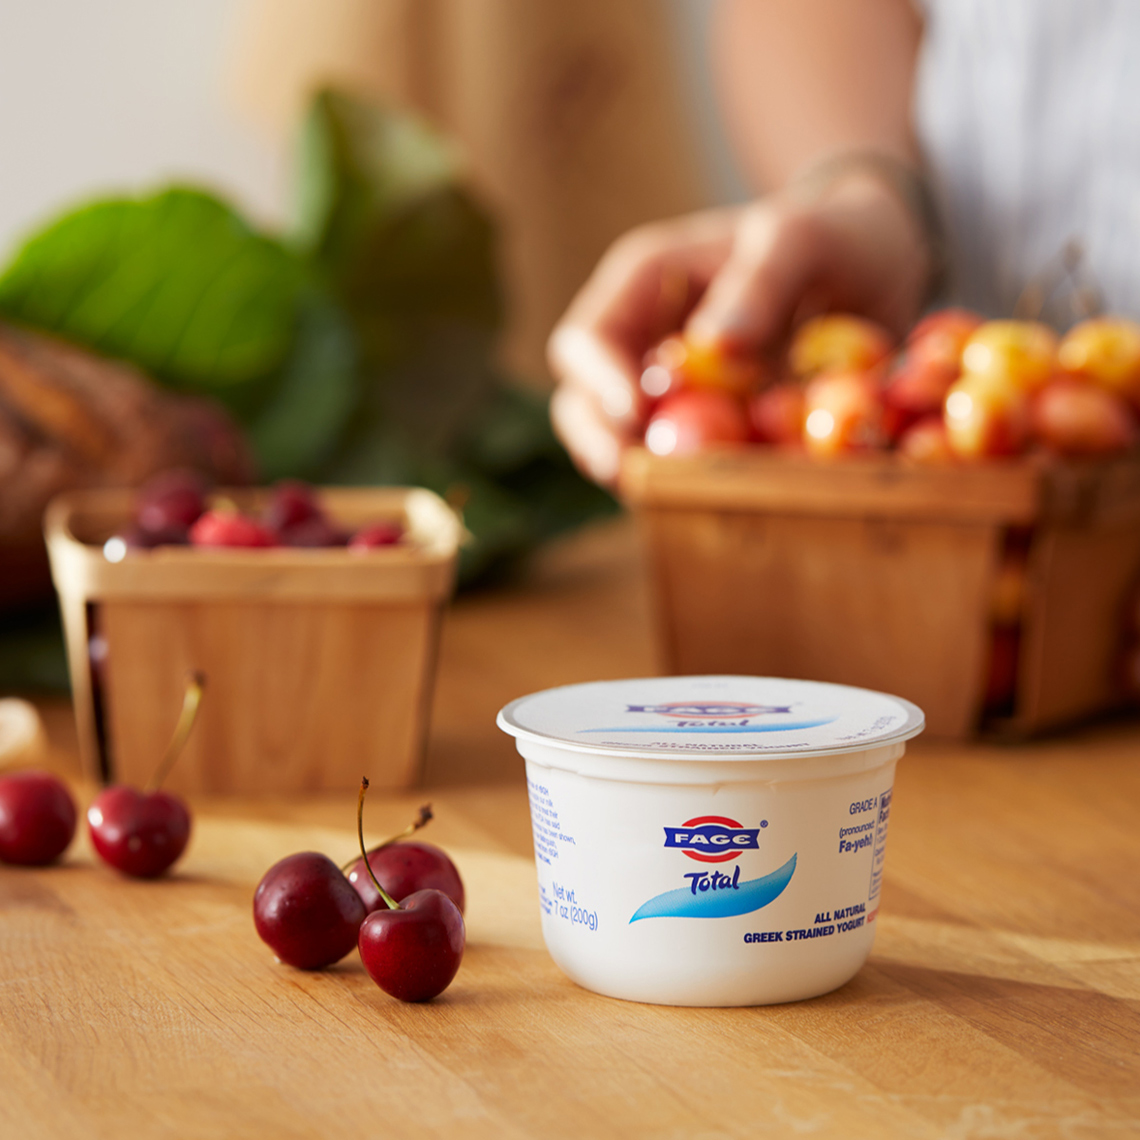 Fage Total Farmers Market Cherries